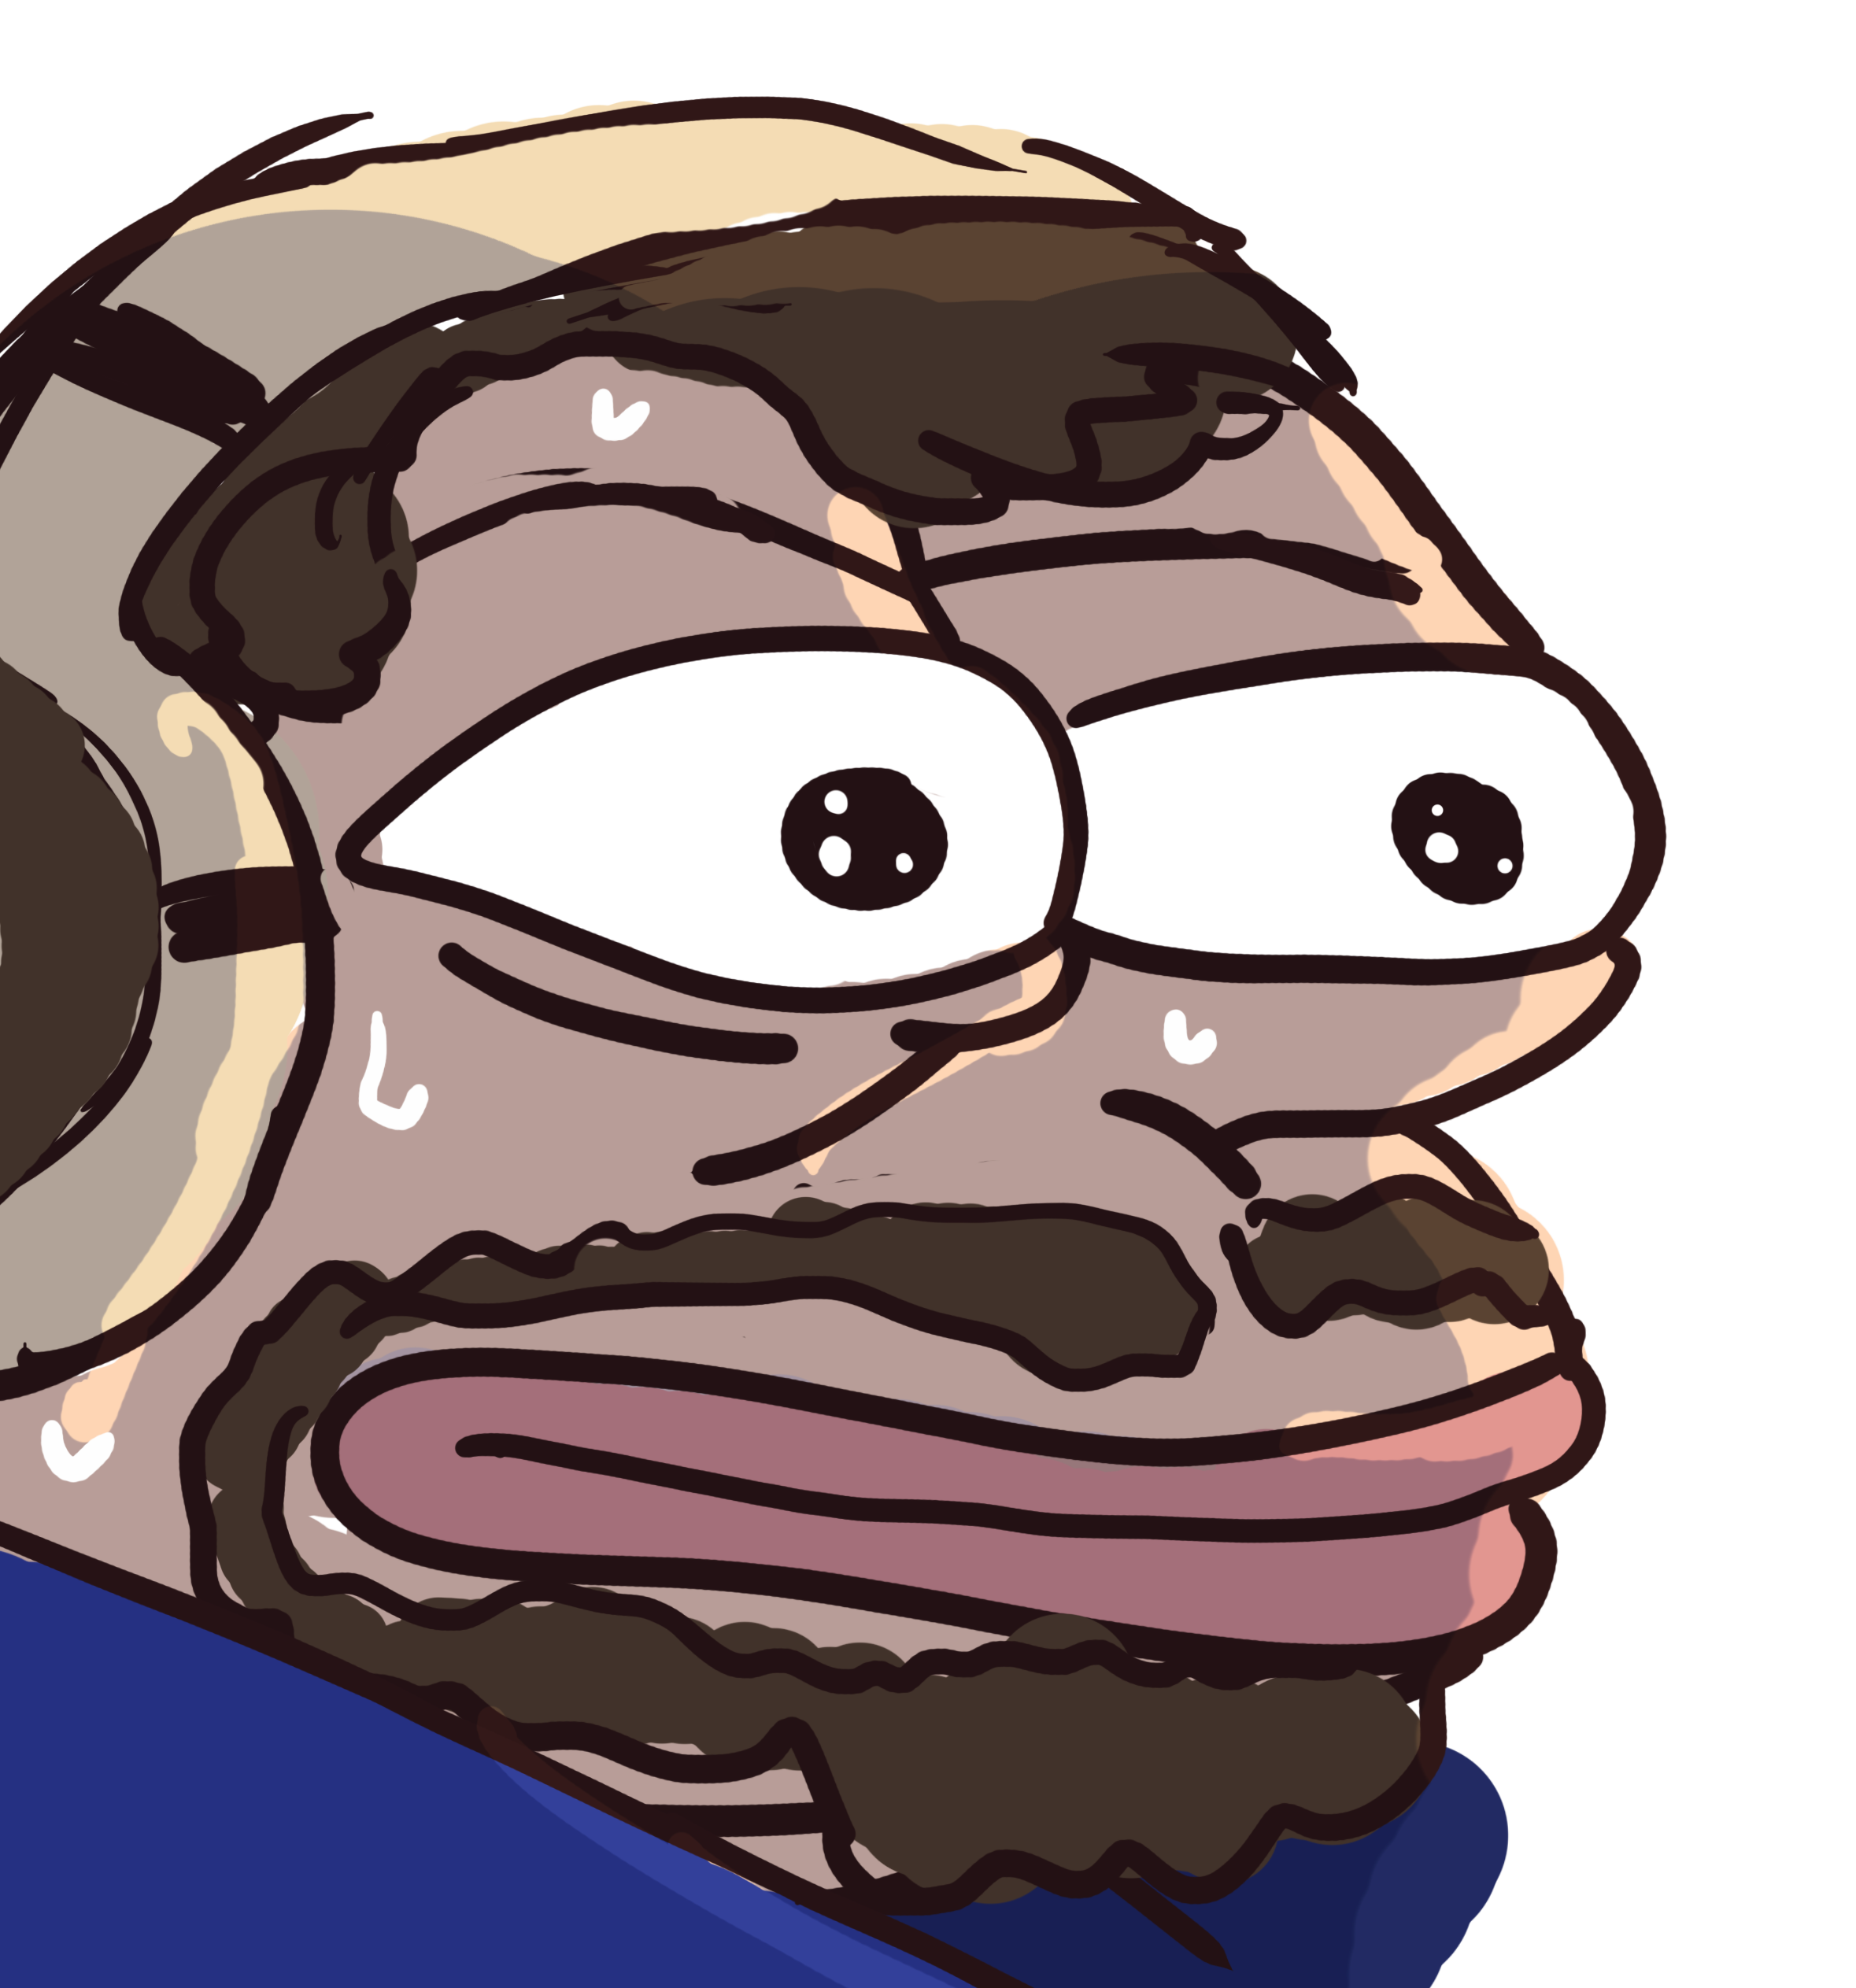 Monkas clipart praying. Teve destiny monkasteve